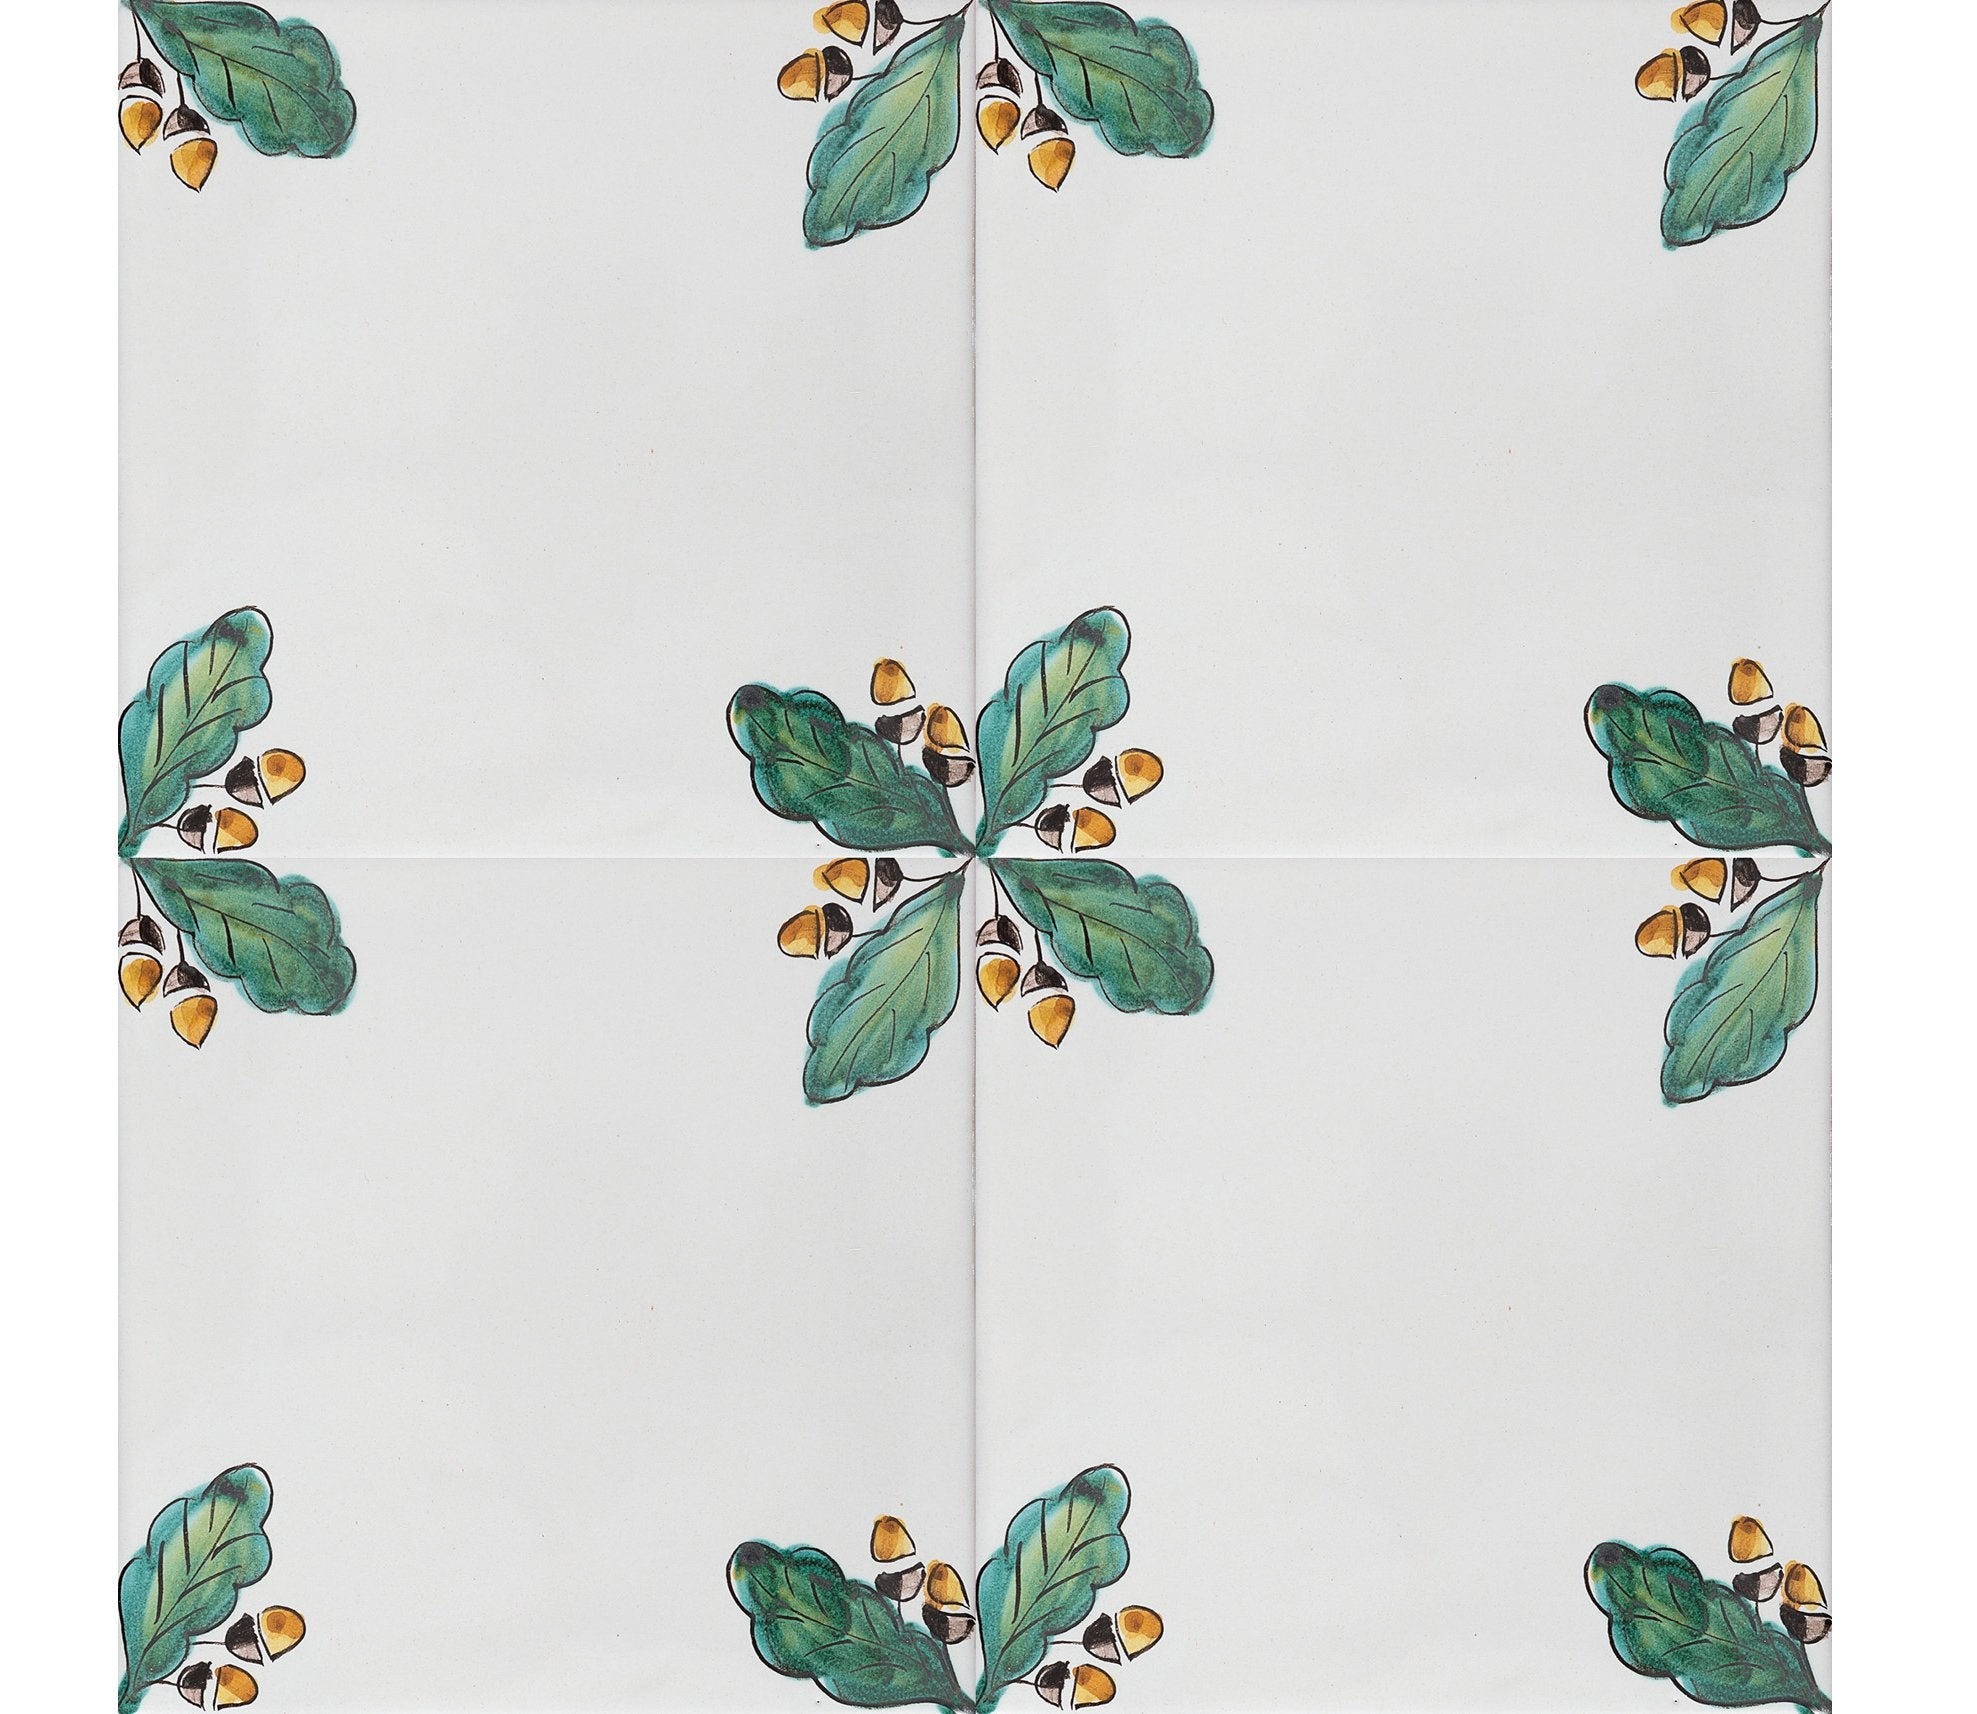 Series S Handpainted Tiles Product Image 35